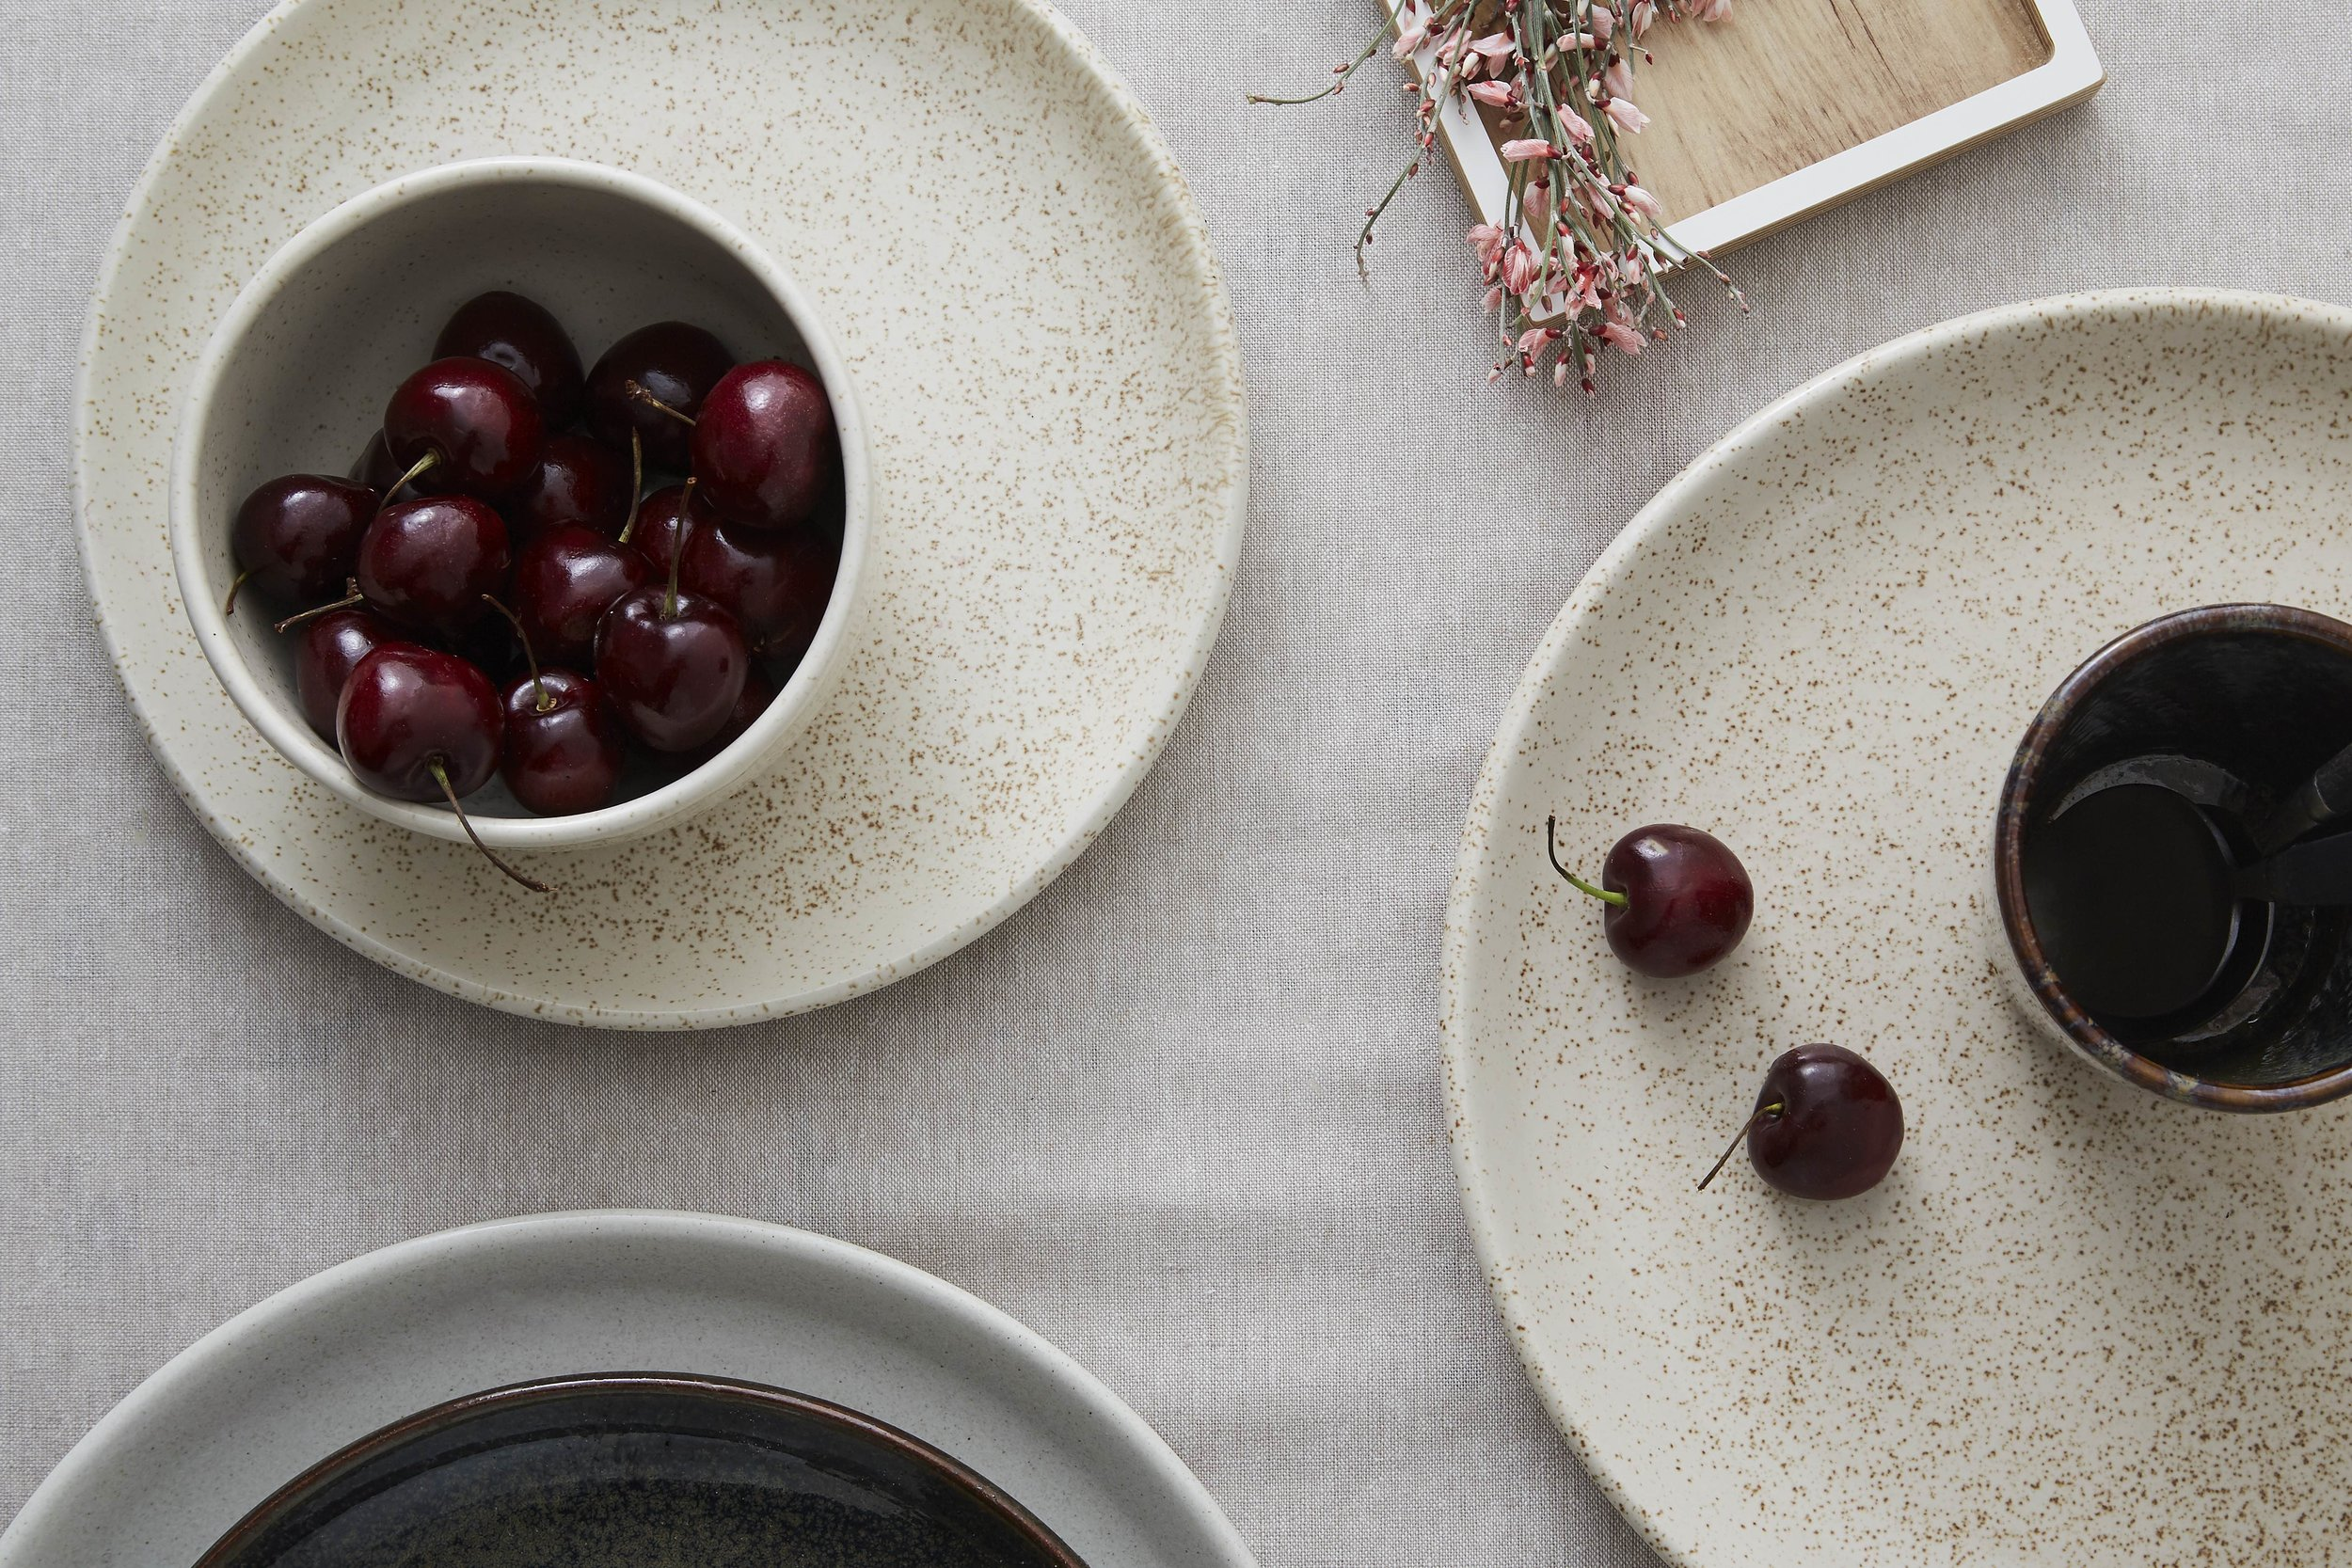 Minor Goods Speckled Stoneware plates flat lay high res.jpg